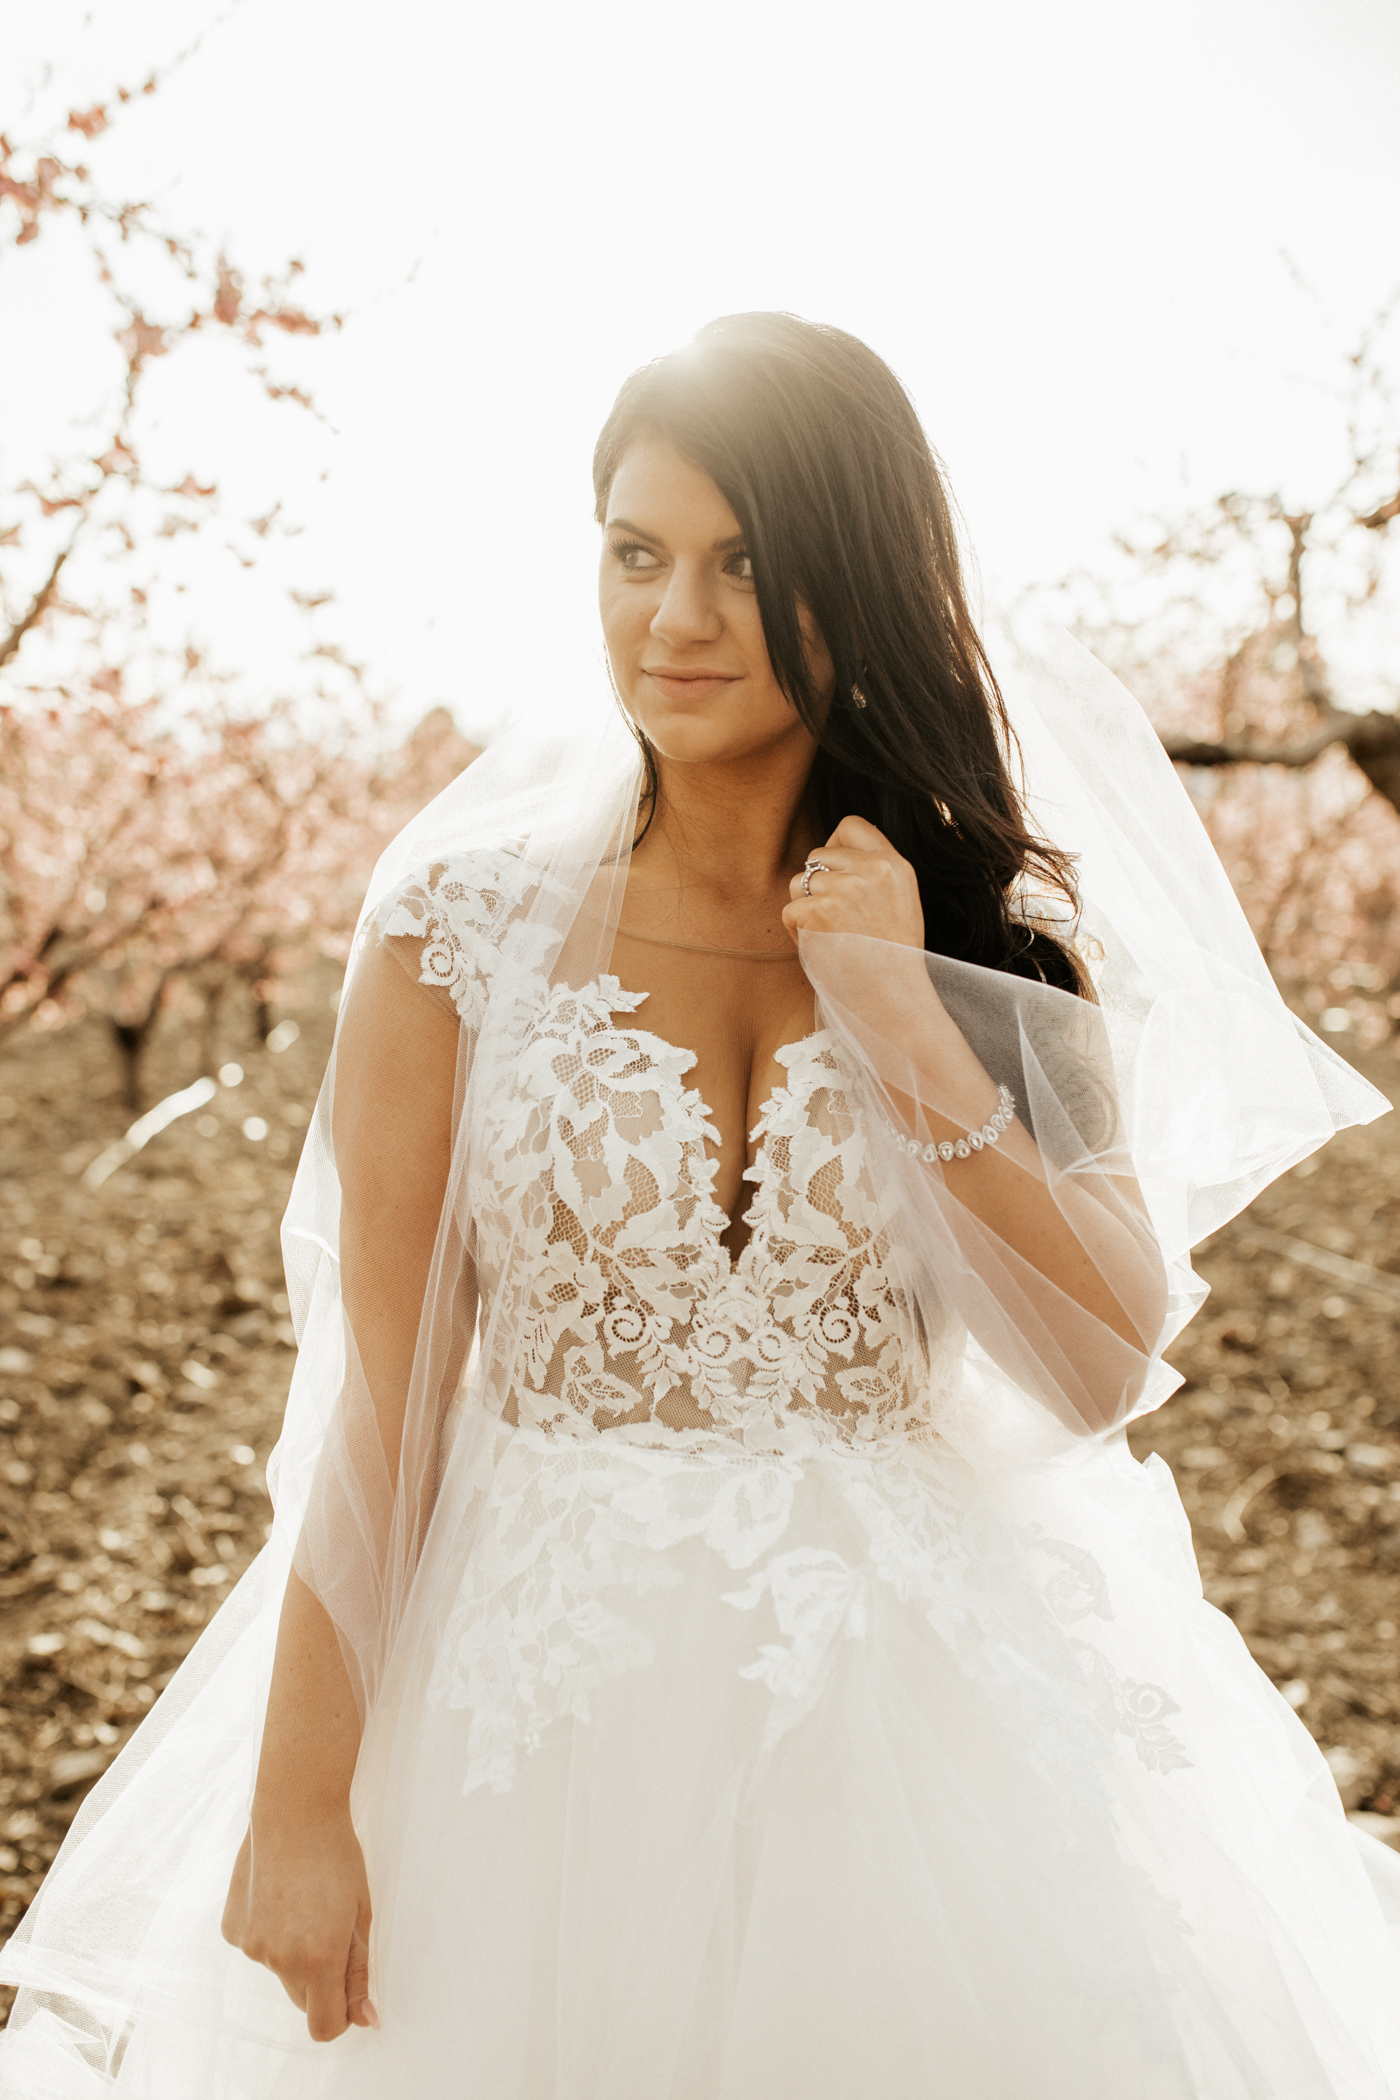 spring blossomed orchard wedding photos